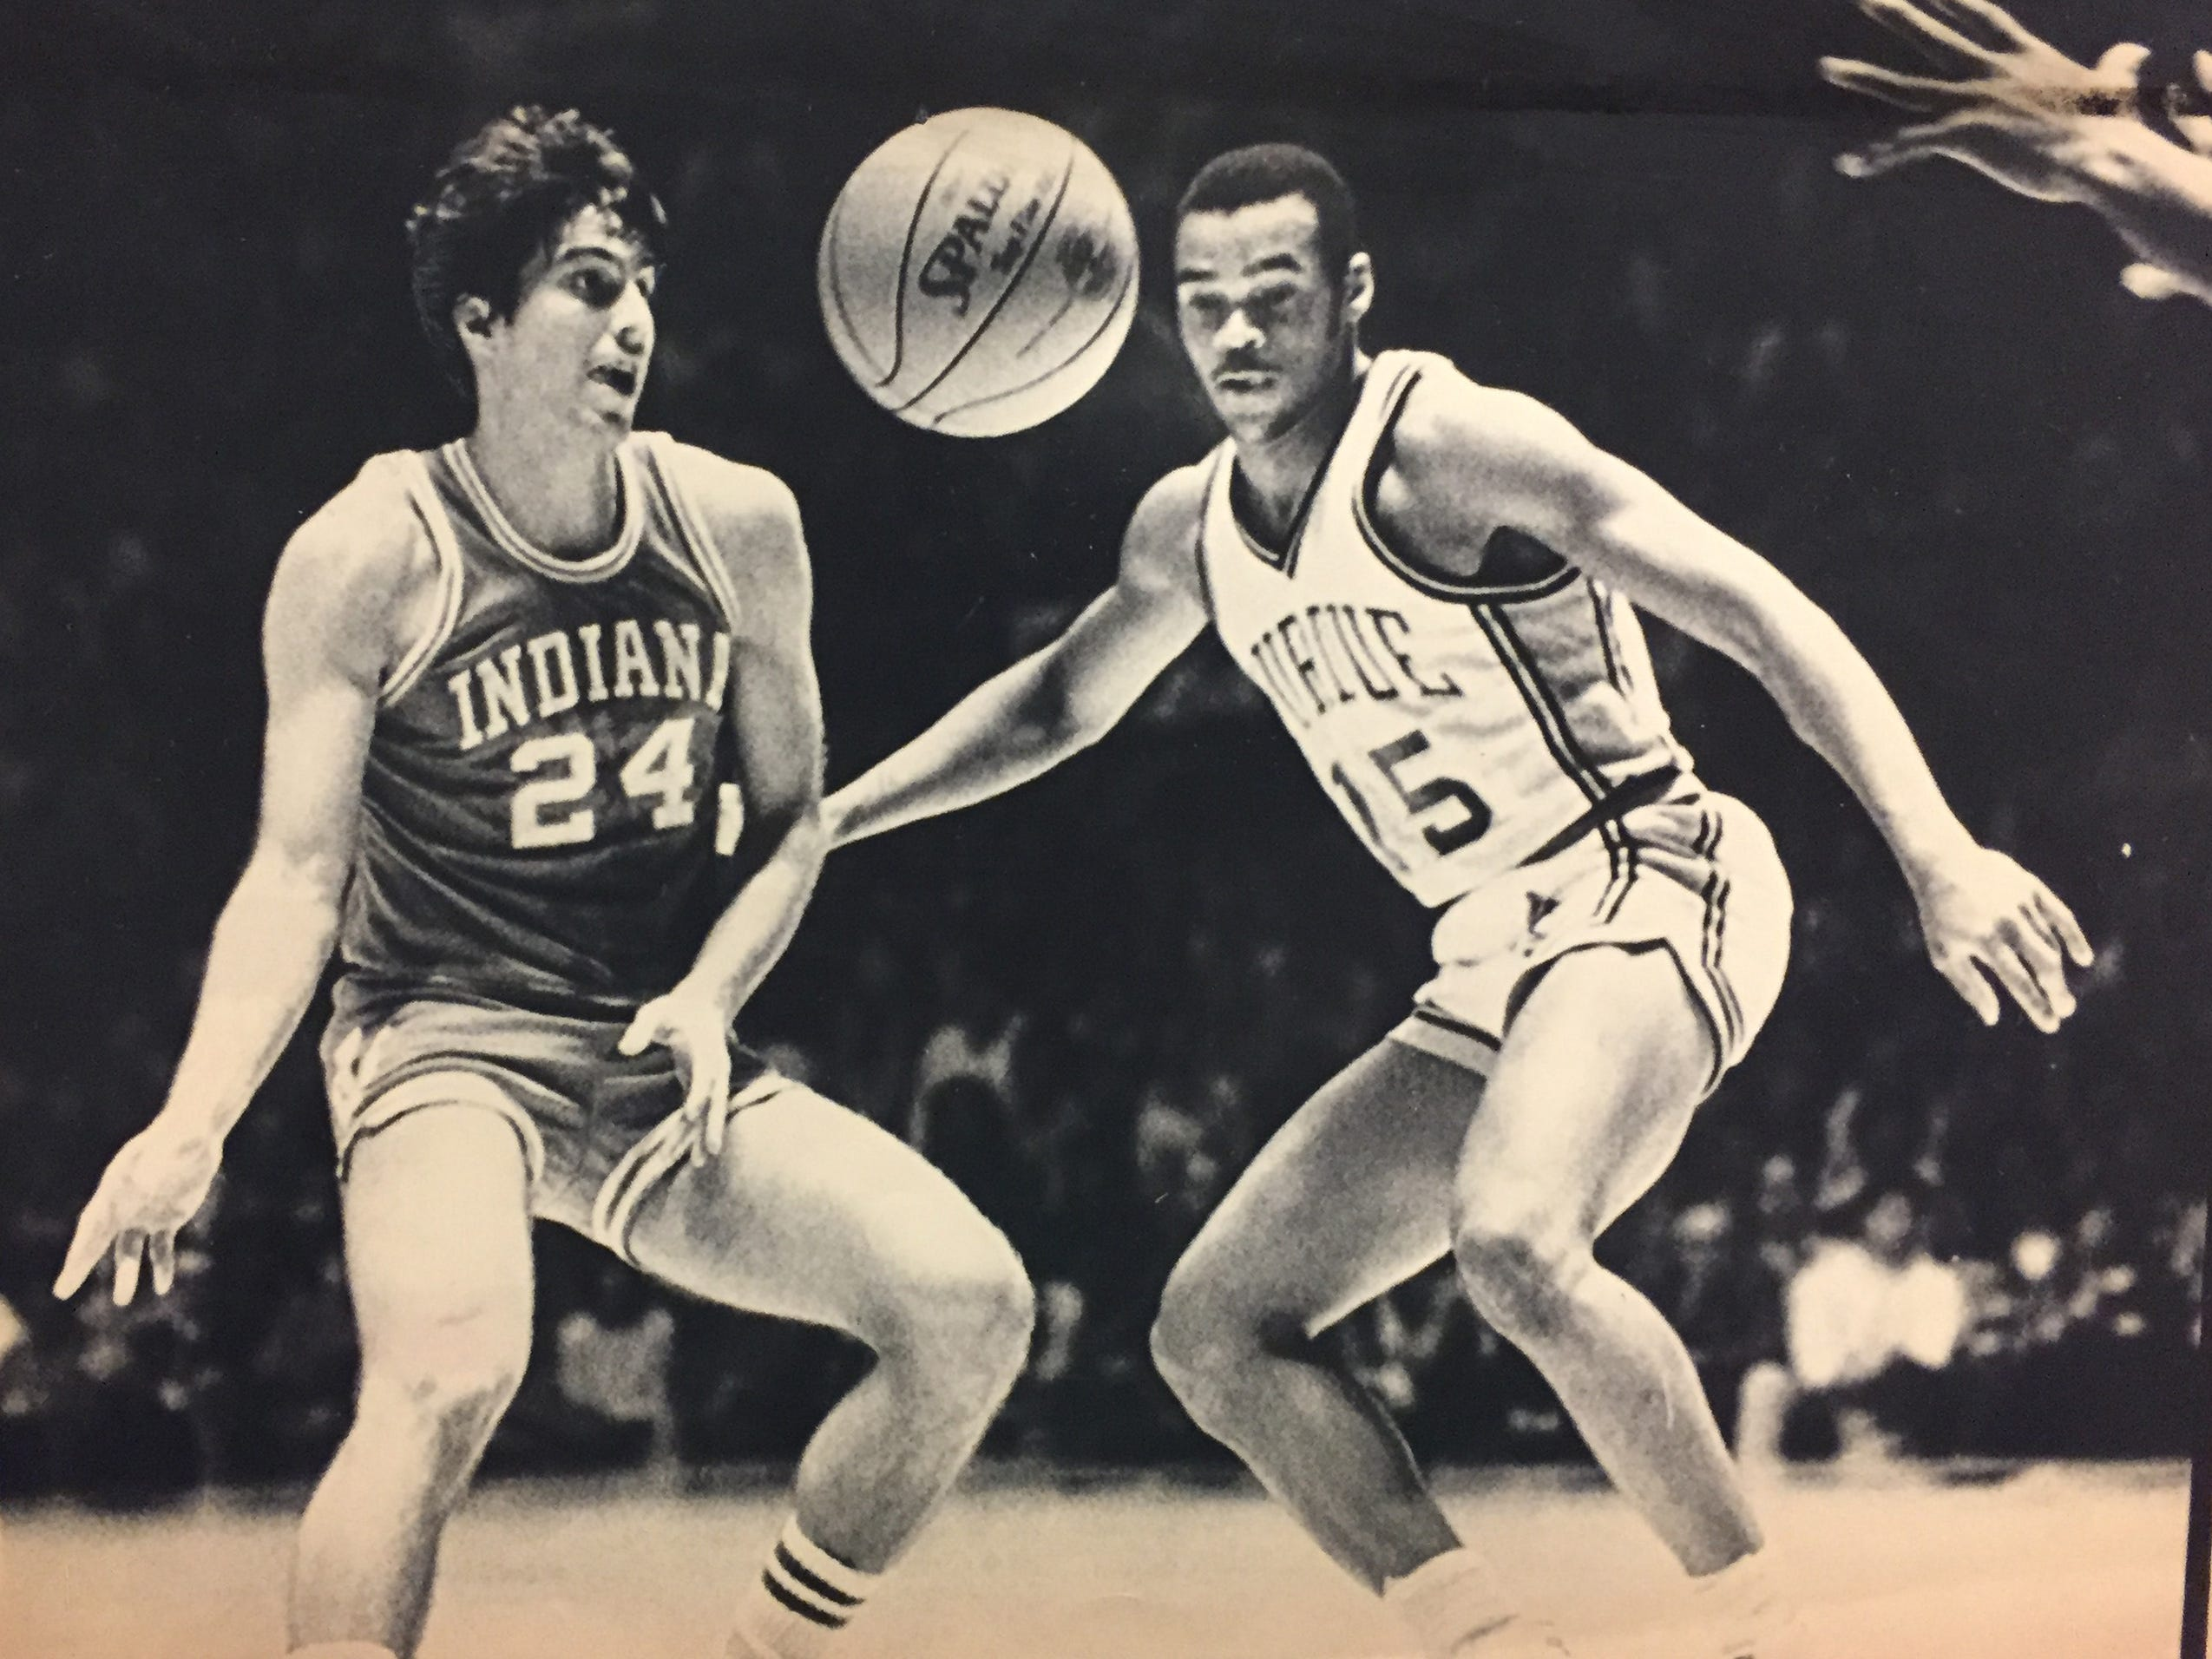 IU's Randdy Wittman releases a pass as Purdue's Jim Bullock defends on Jan. 15, 1983.